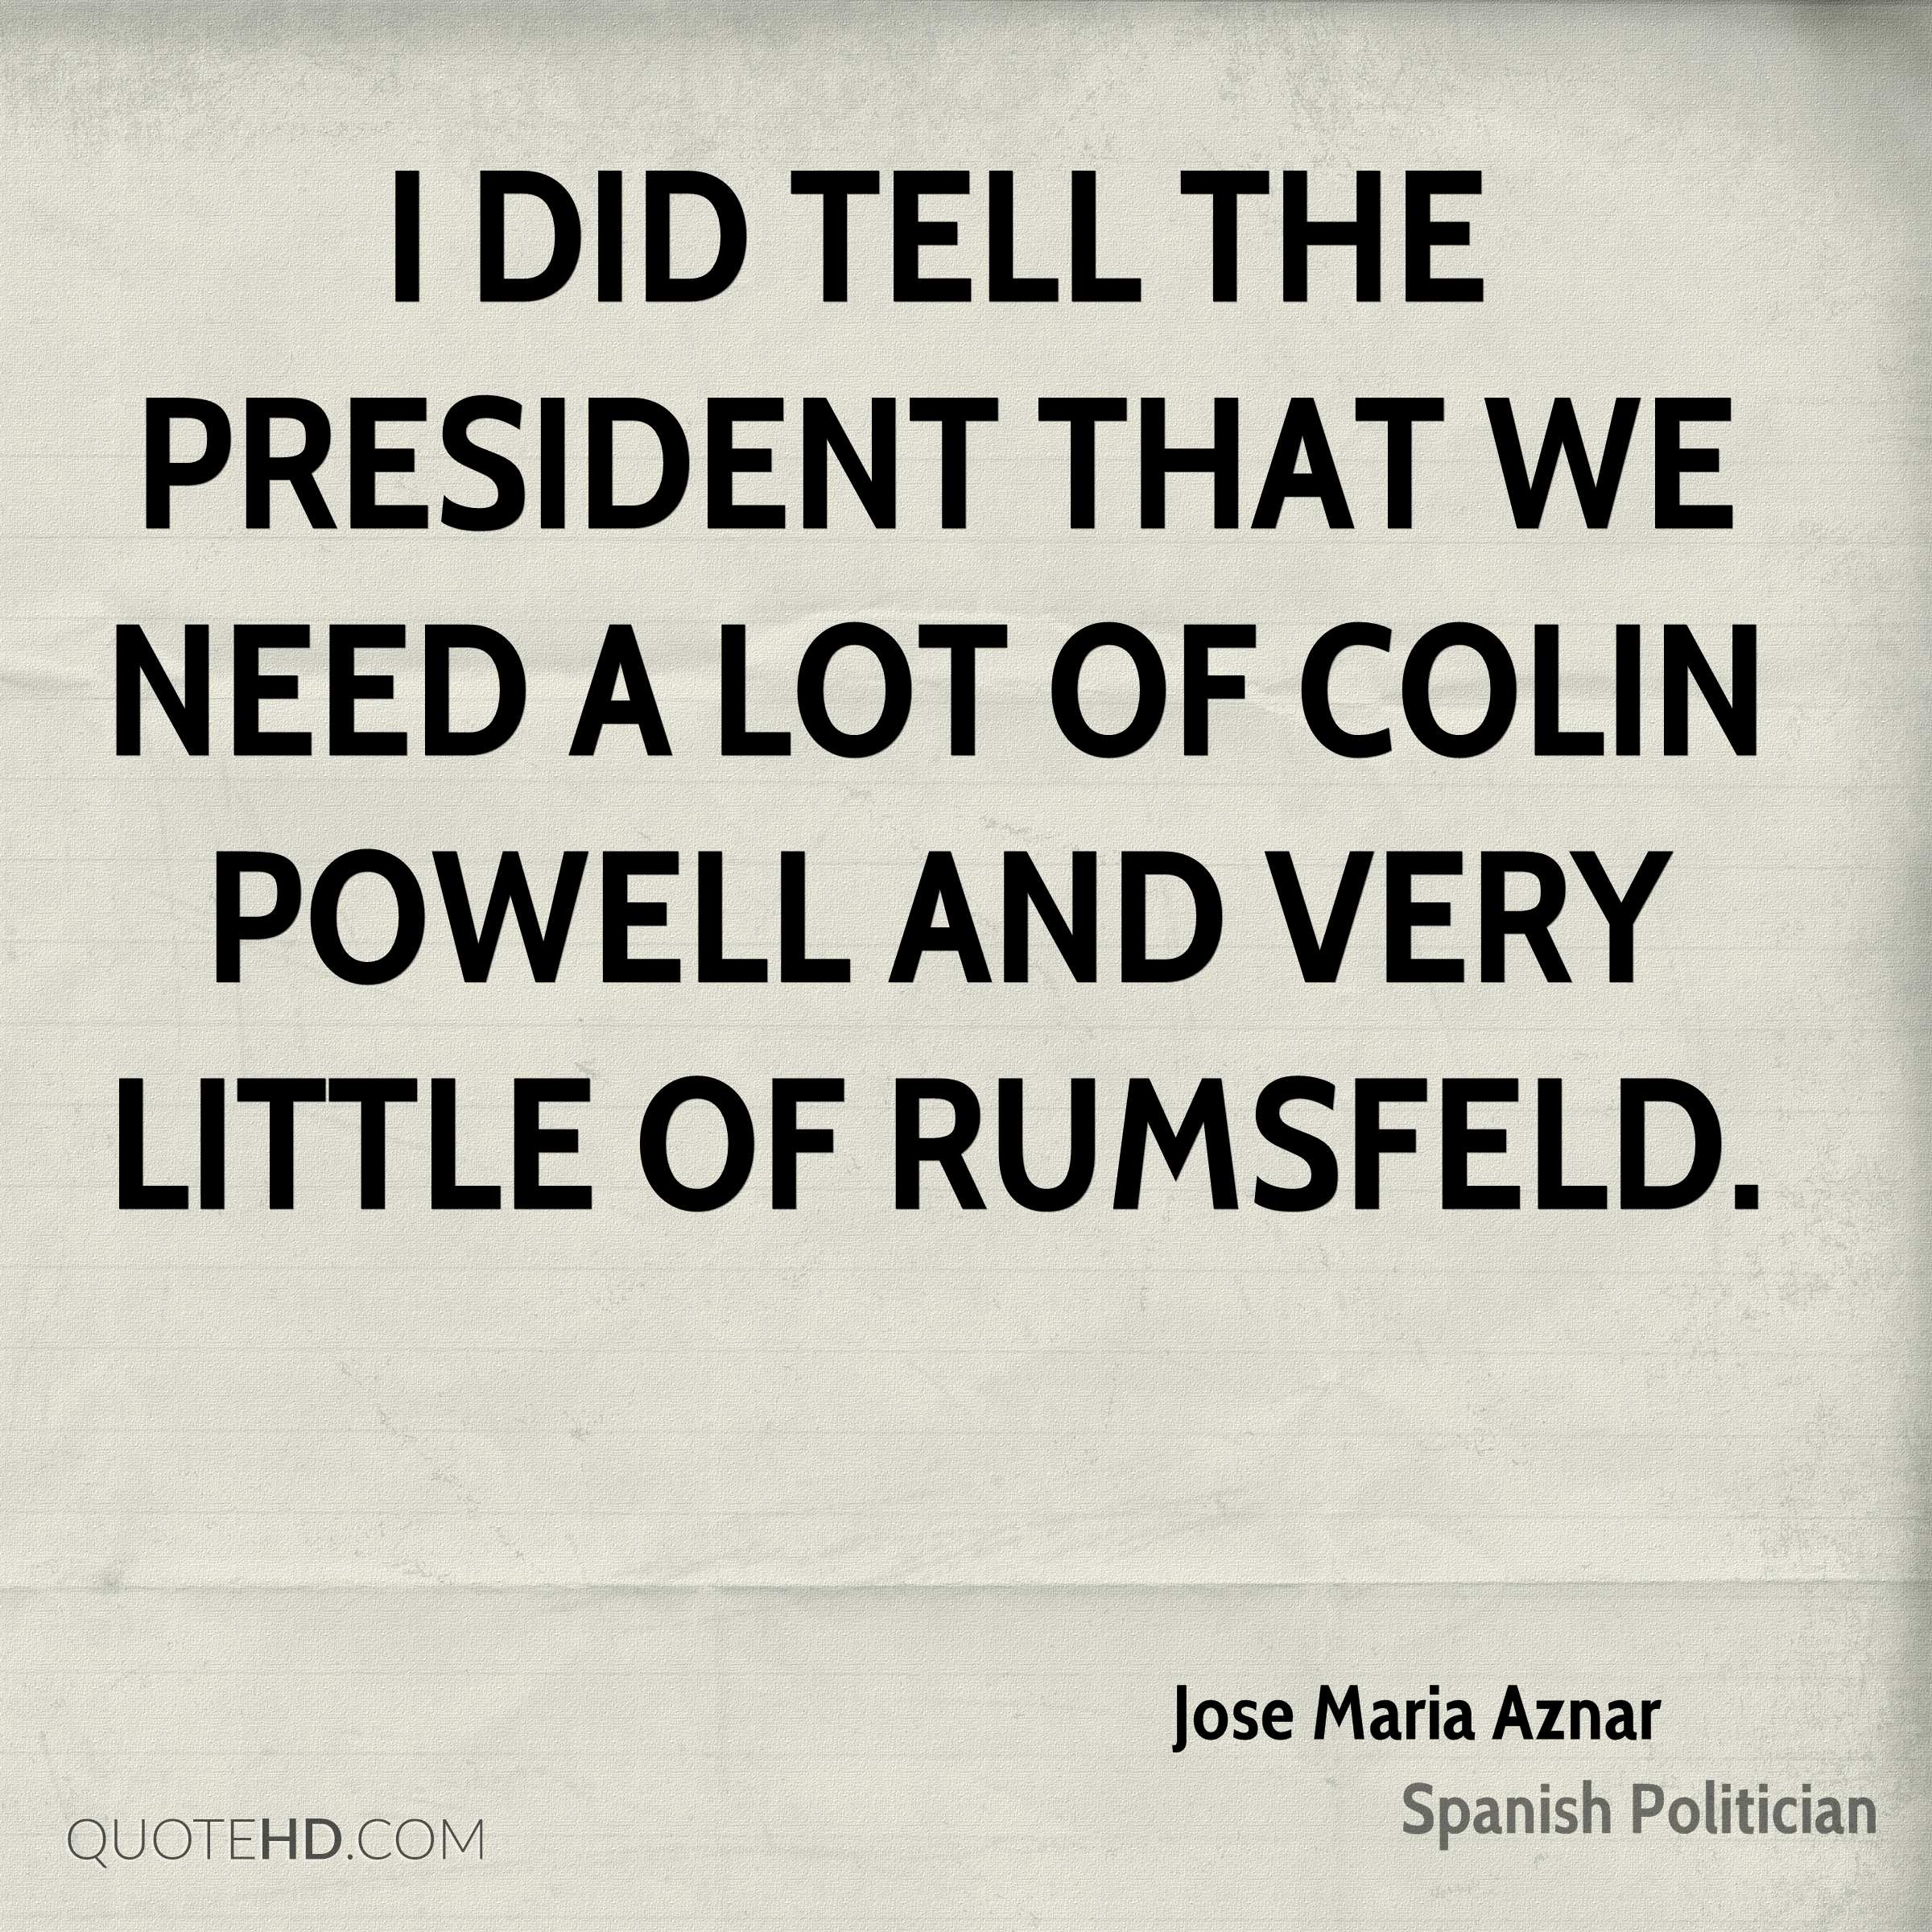 I did tell the President that we need a lot of Colin Powell and very little of Rumsfeld.